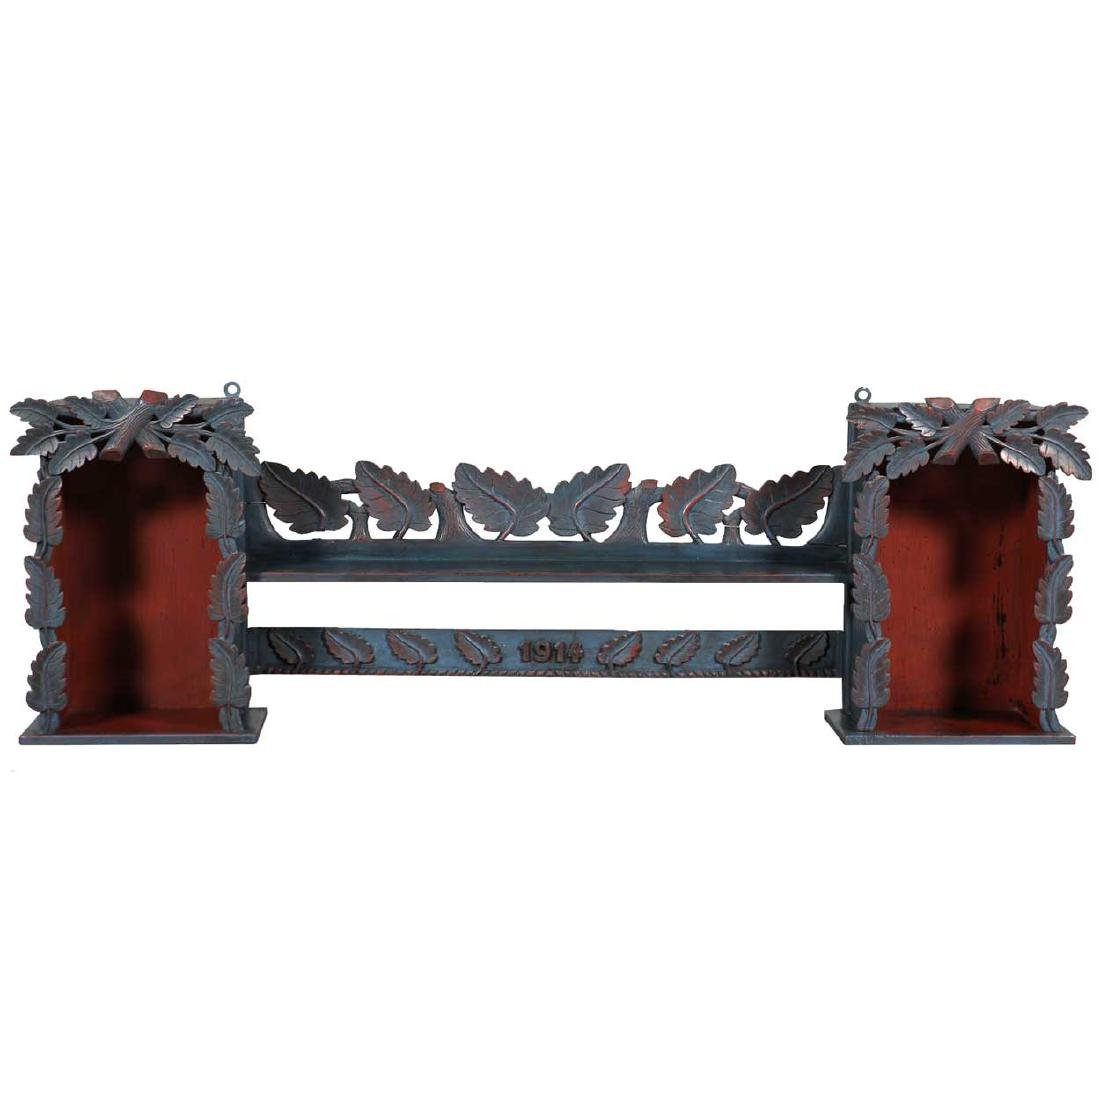 Antique German Black Forest Painted Pine Wall Shelf